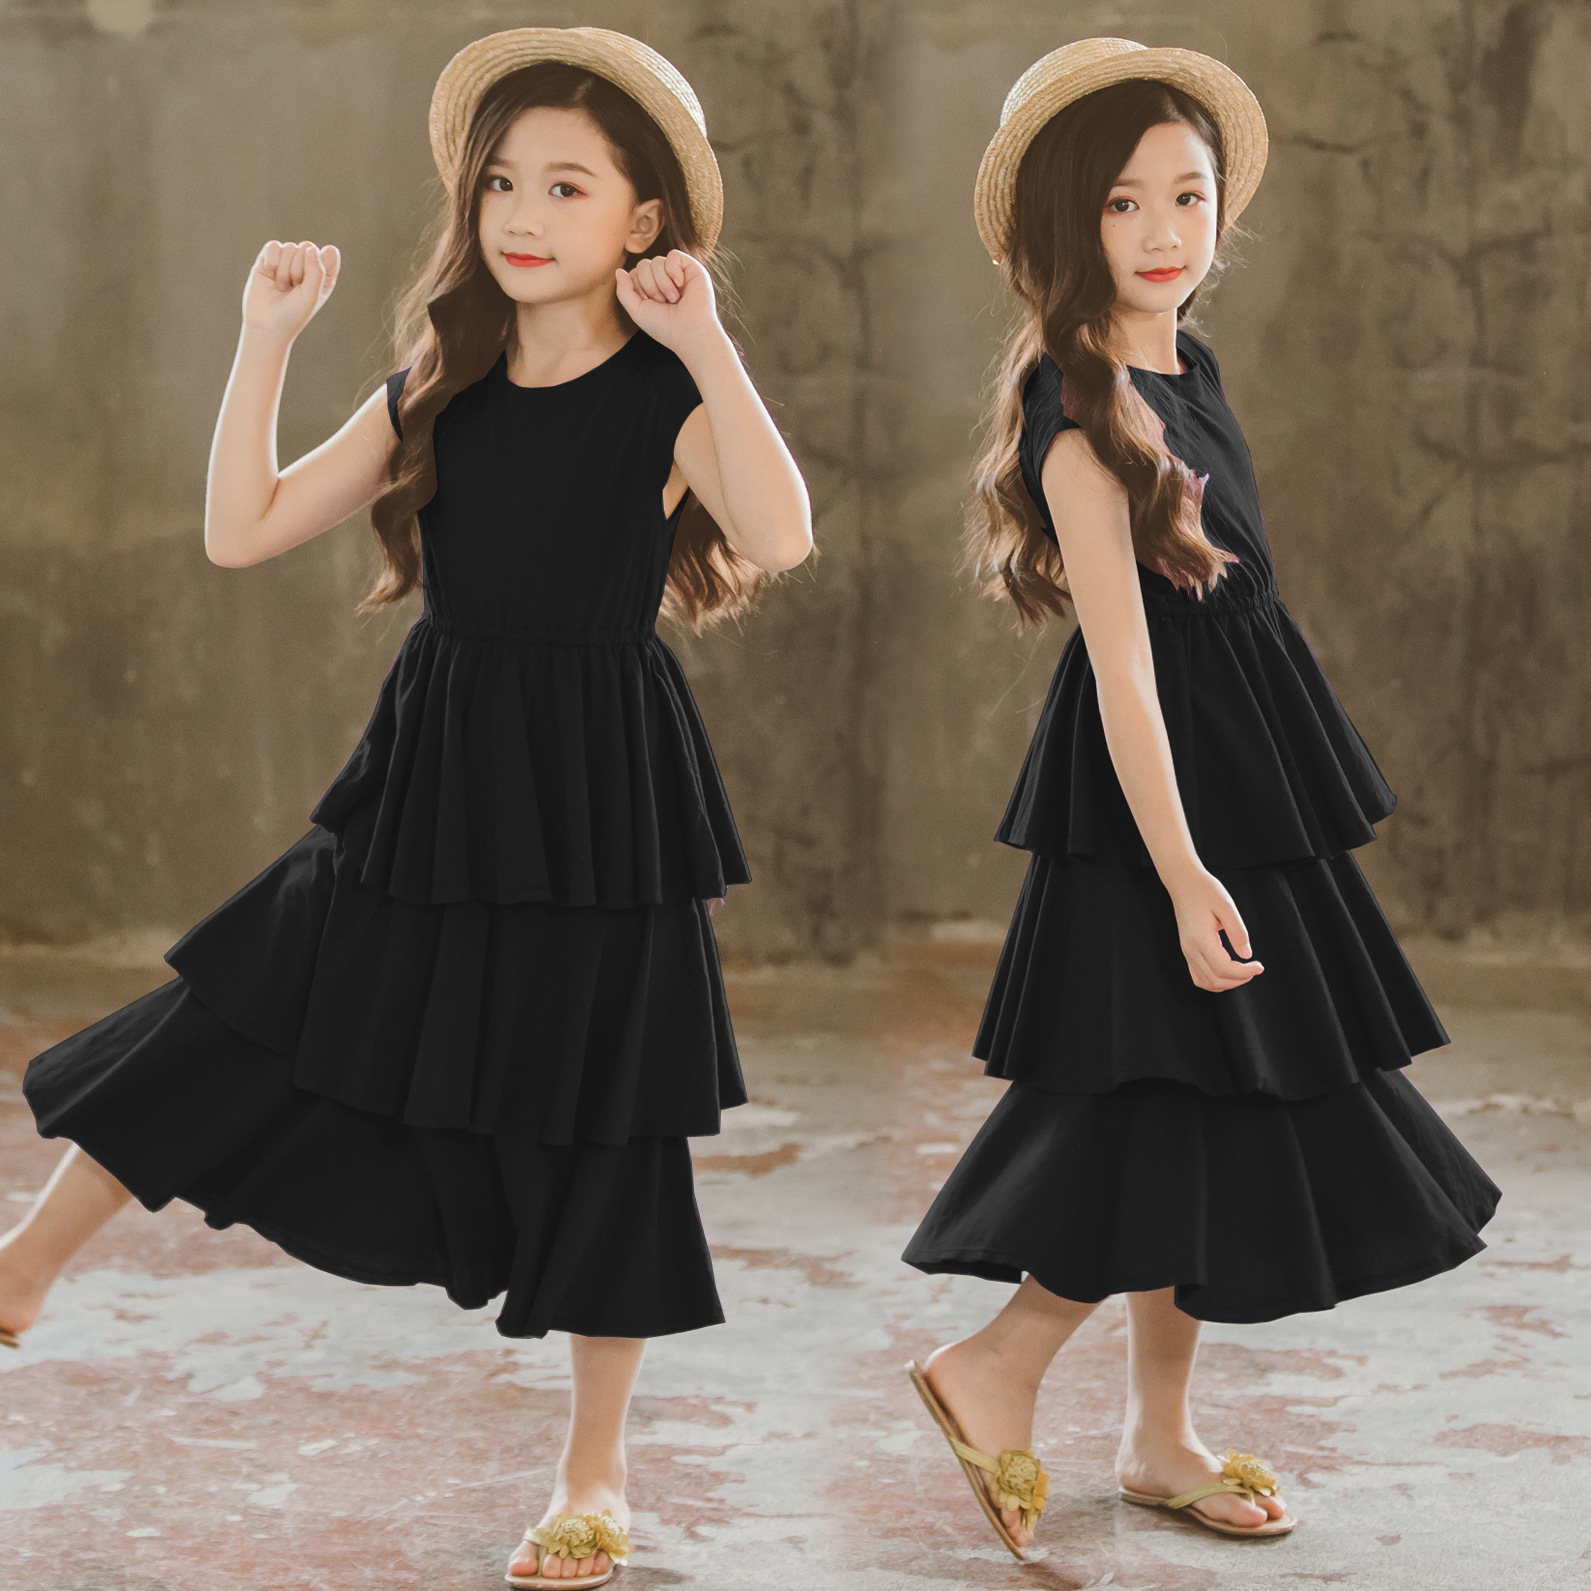 Brand Children Dress 2019 New Kids Summer Dress for Girls Cotton Layered Dress Beach Baby Clothes Toddler Sundress,#5079Brand Children Dress 2019 New Kids Summer Dress for Girls Cotton Layered Dress Beach Baby Clothes Toddler Sundress,#5079